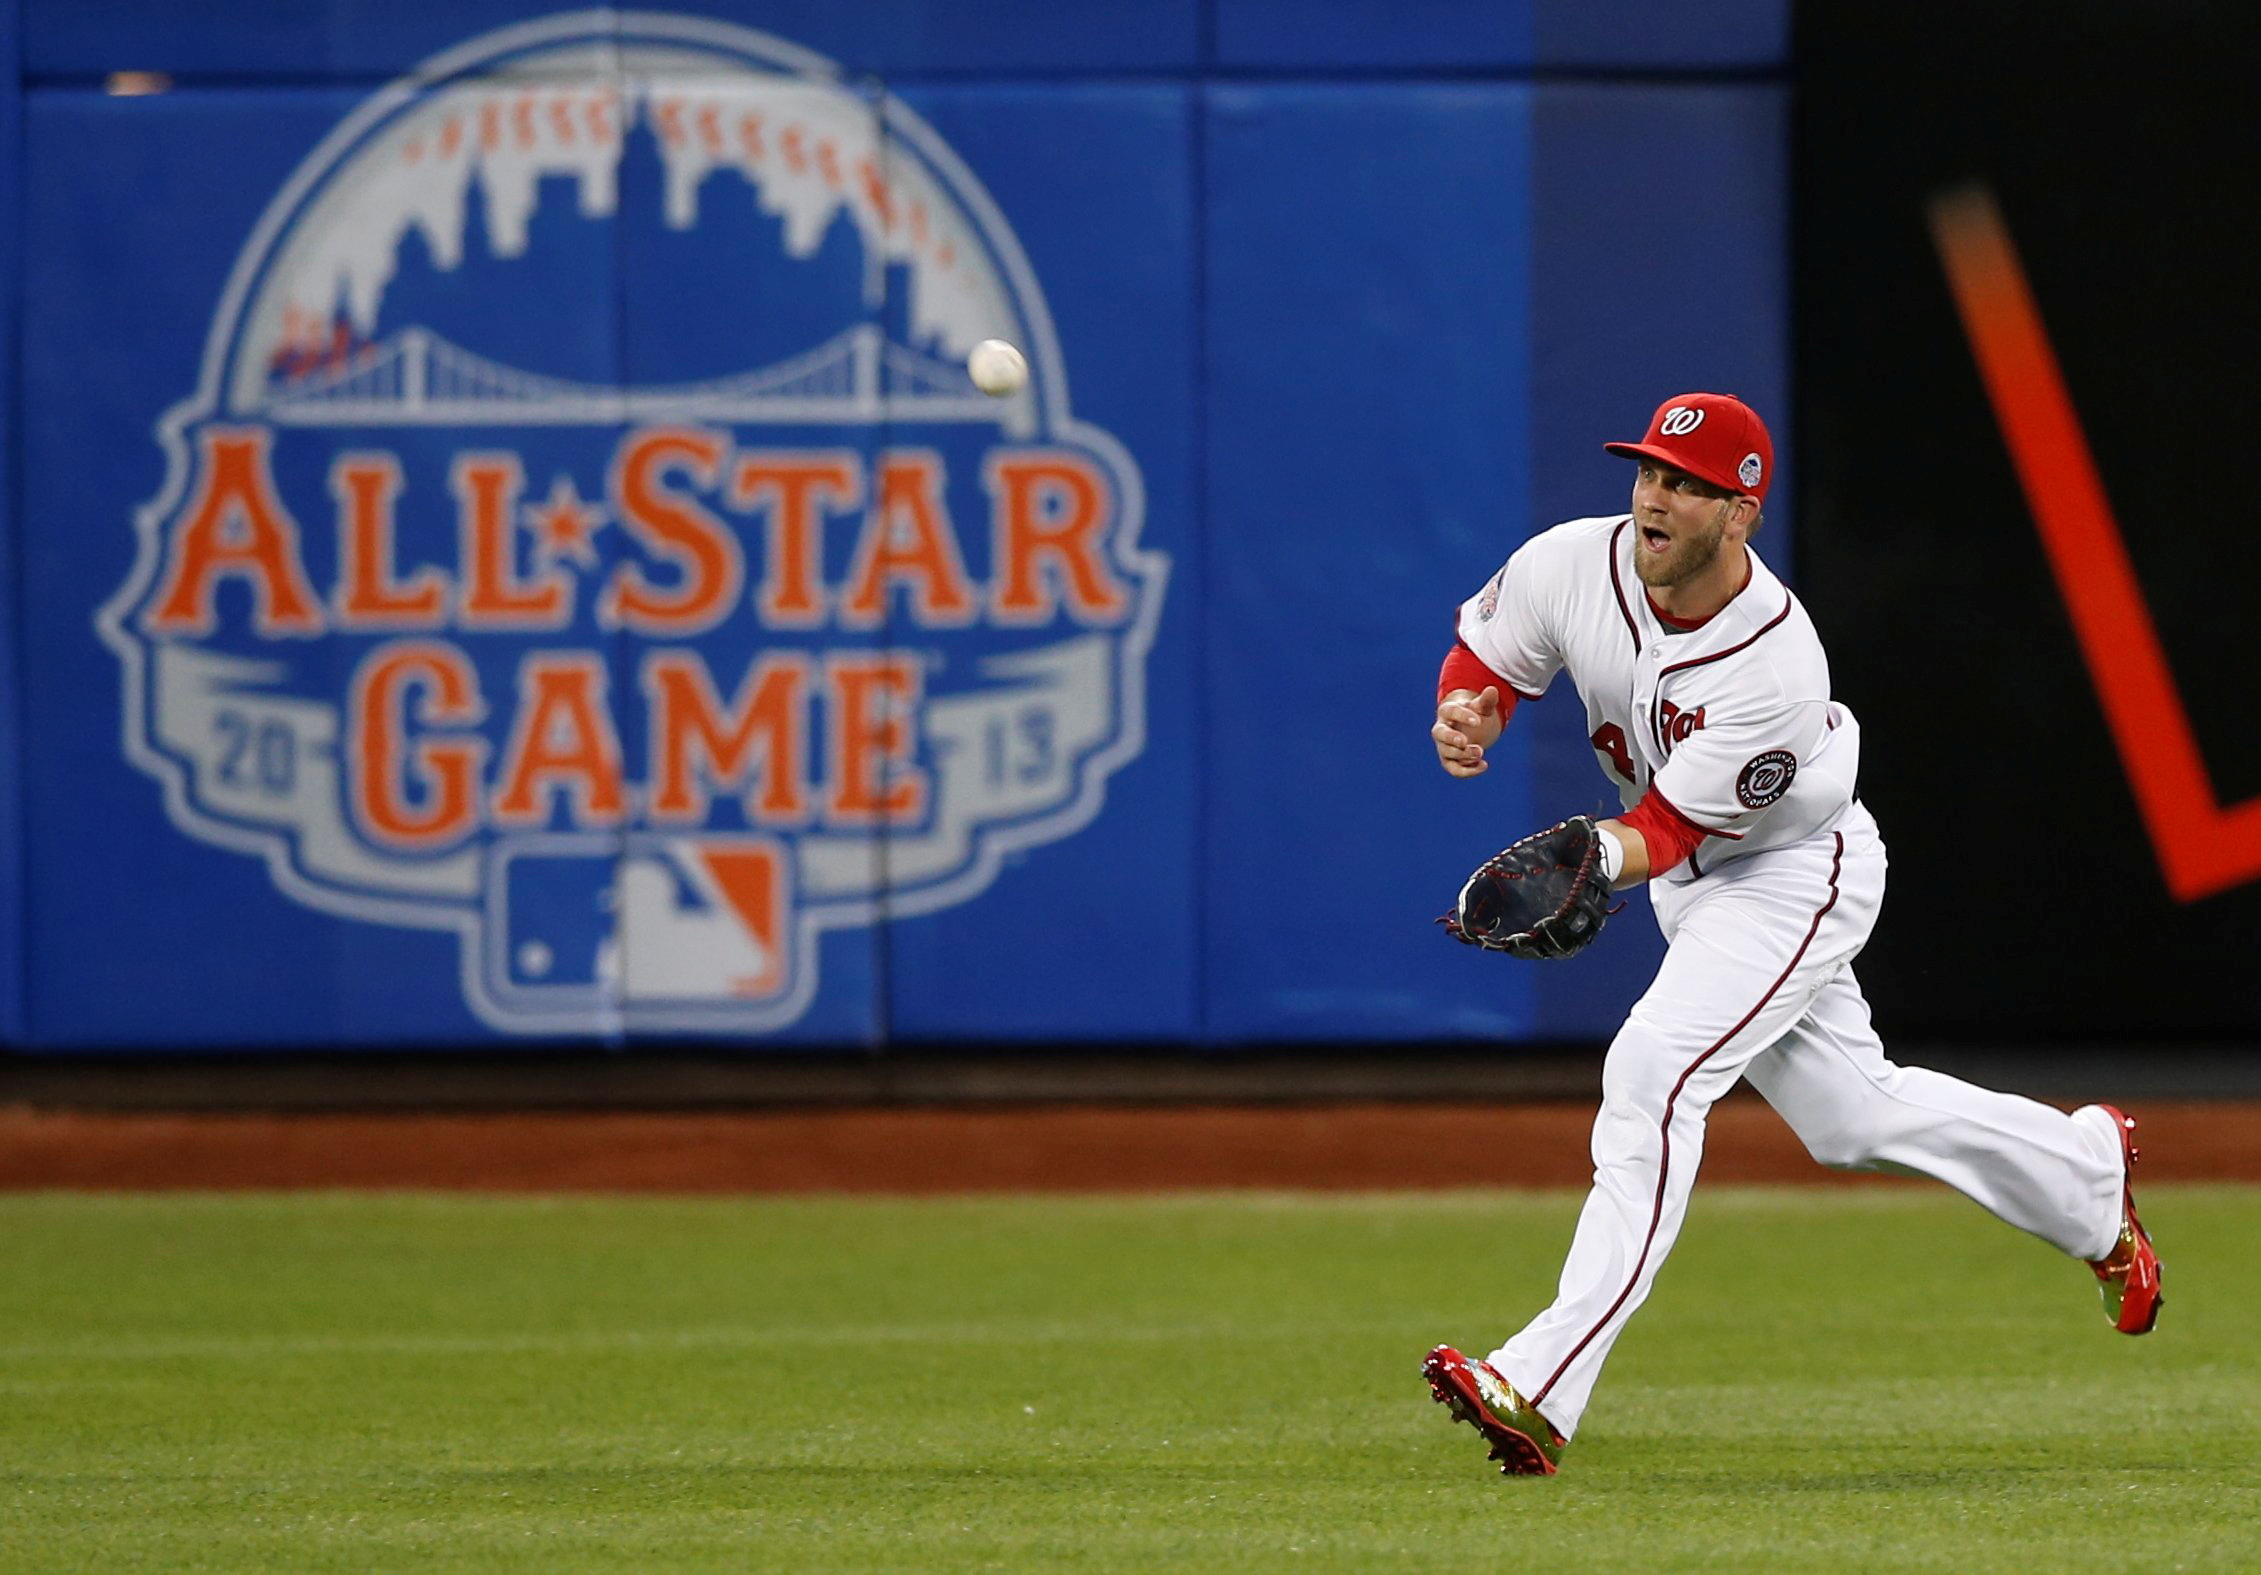 Conservative Small Business Group Sues Major League Baseball for Moving All-Star Game Out of Georgia